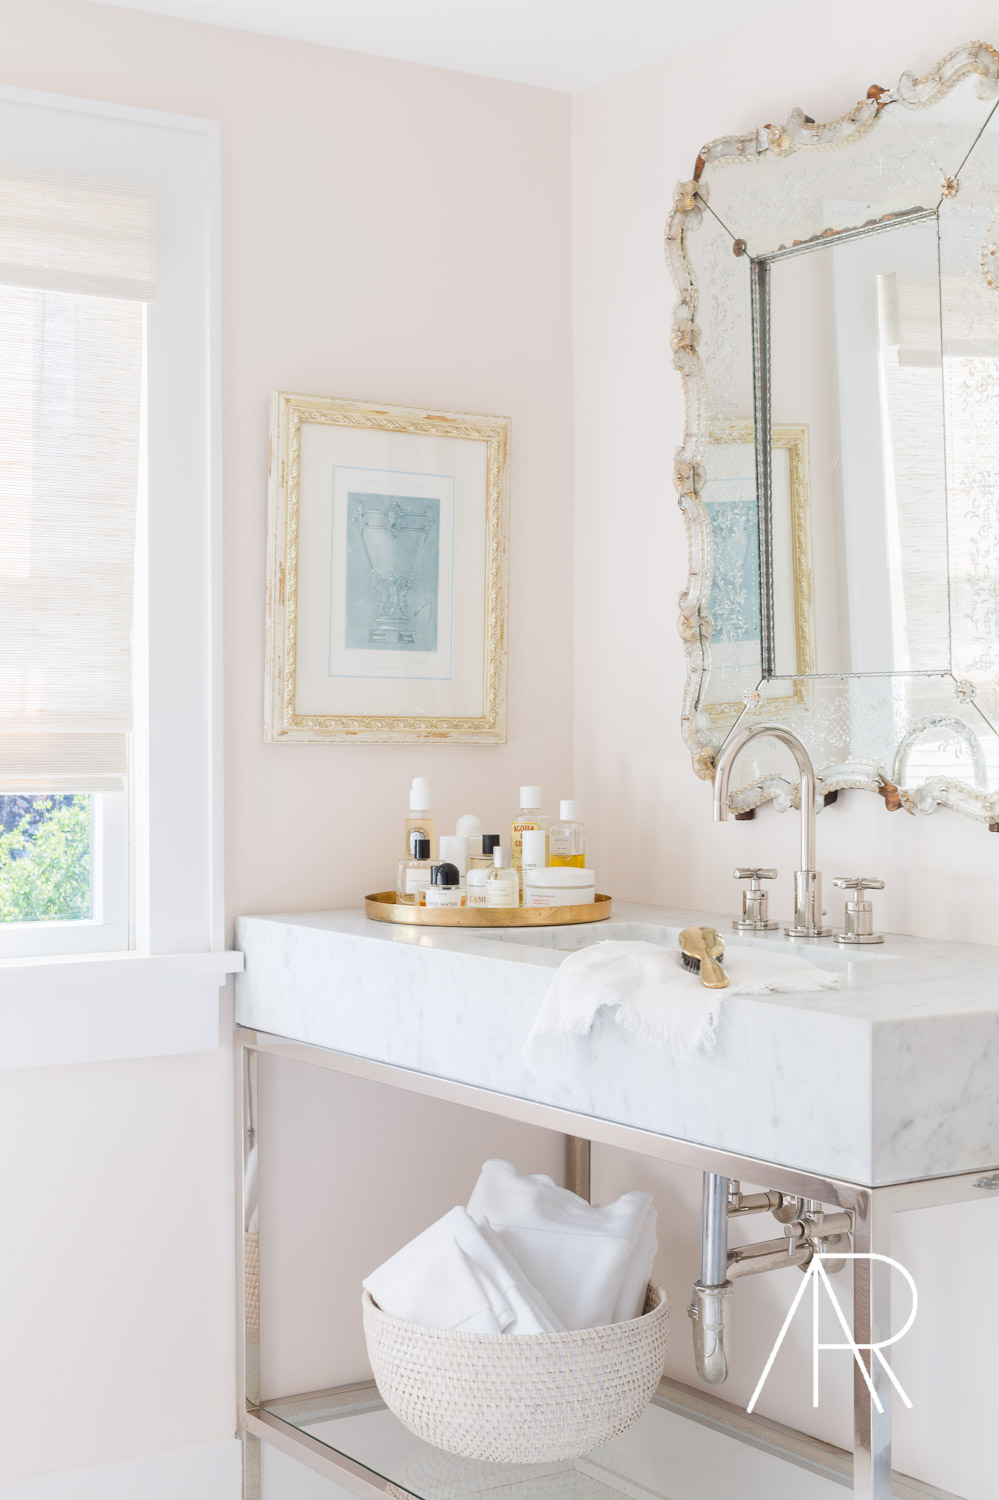 Alyssa Rosenheck's The New Southern Designer Raquel Garcia featured on Elle Decor